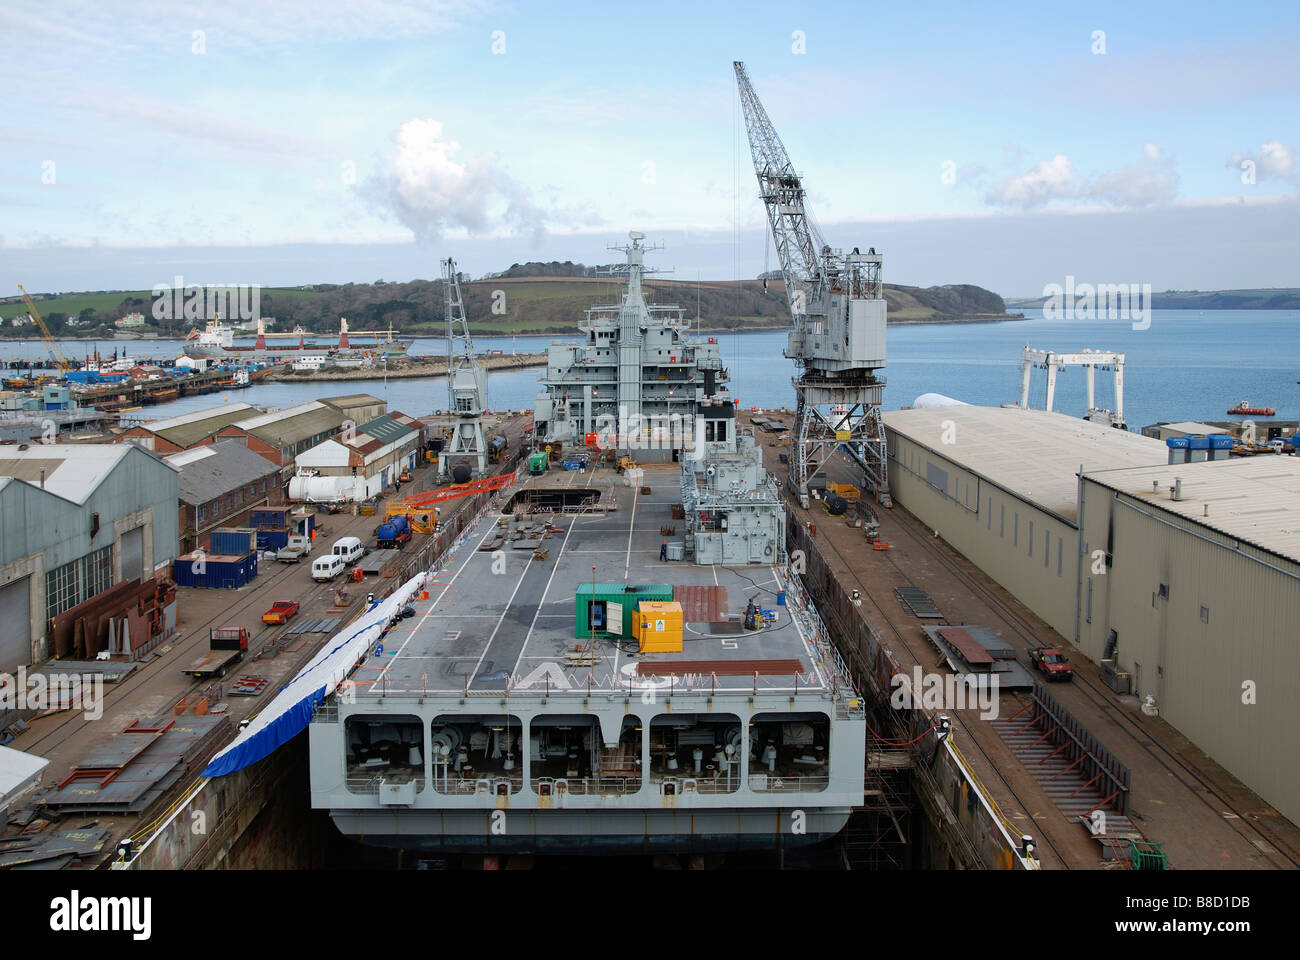 a ship from the royal auxiliary fleet undergoing repairs in